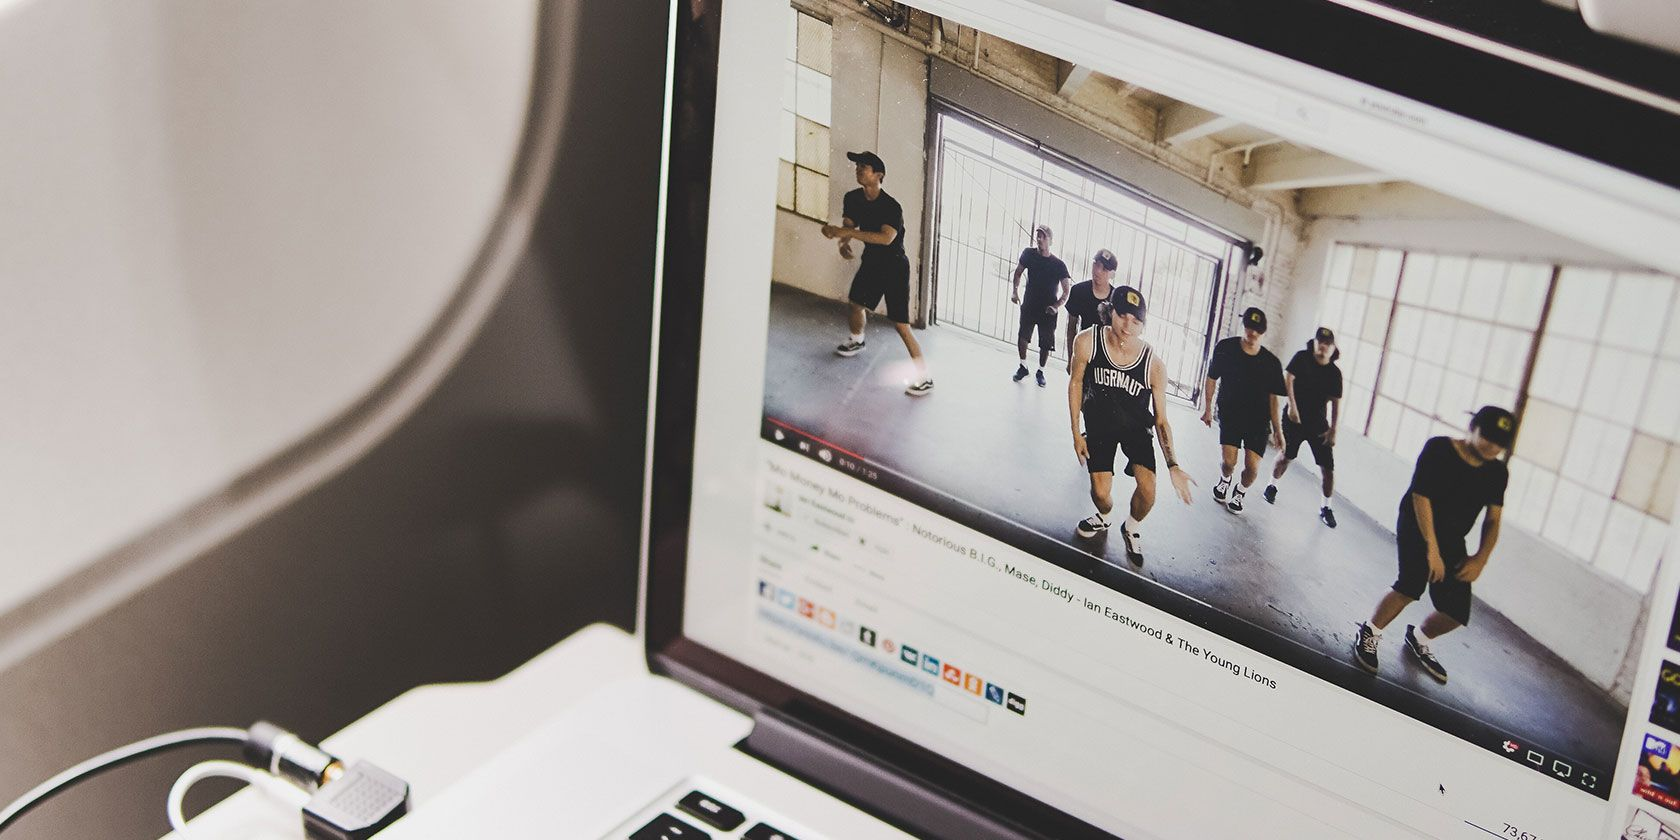 Best Laptop for Video Edits